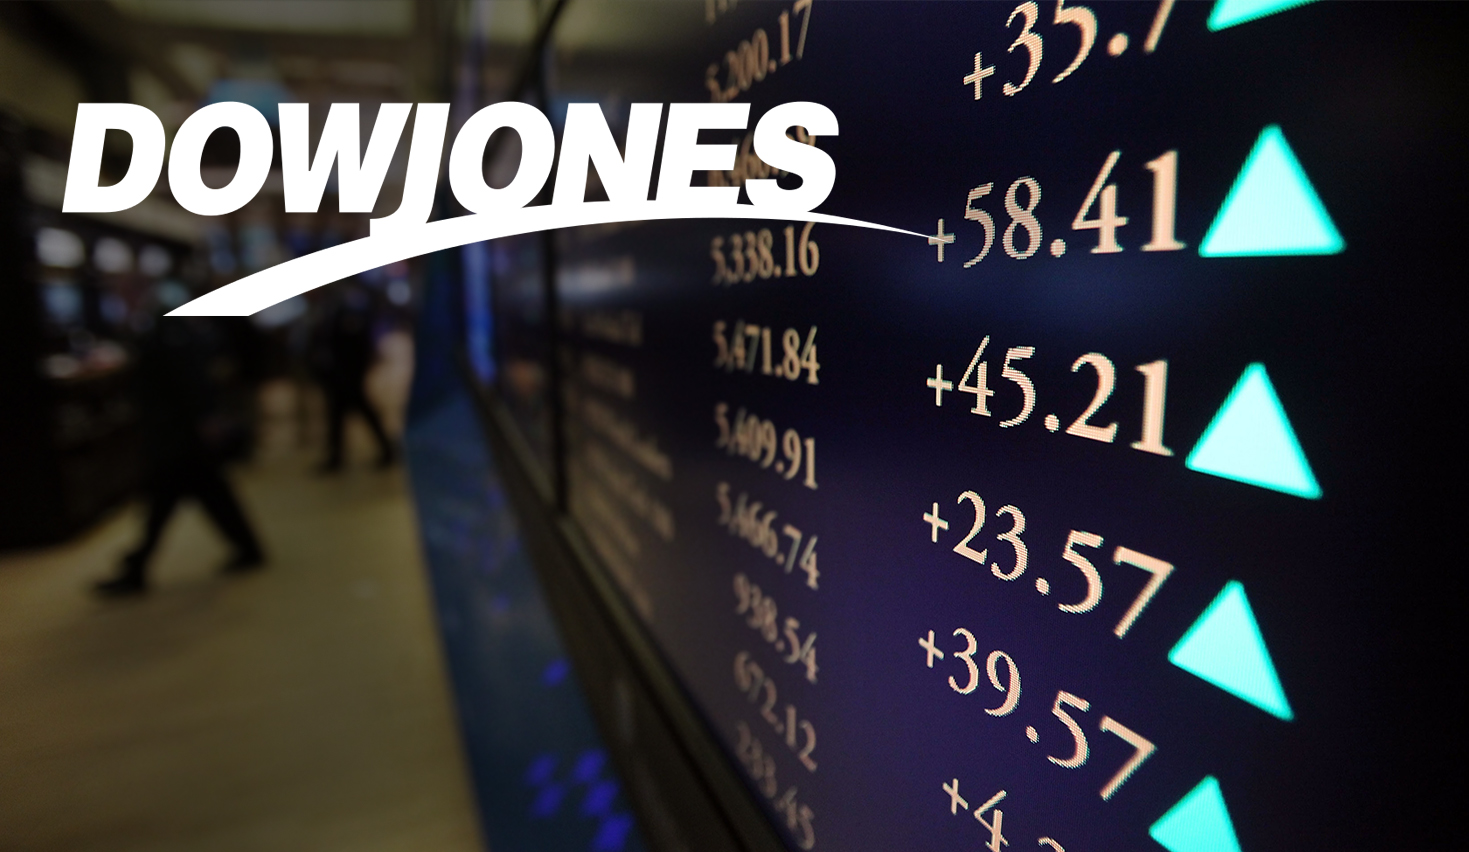 Dow Jones Industrial Average: How to easily monitor the stock market - TeleTrade